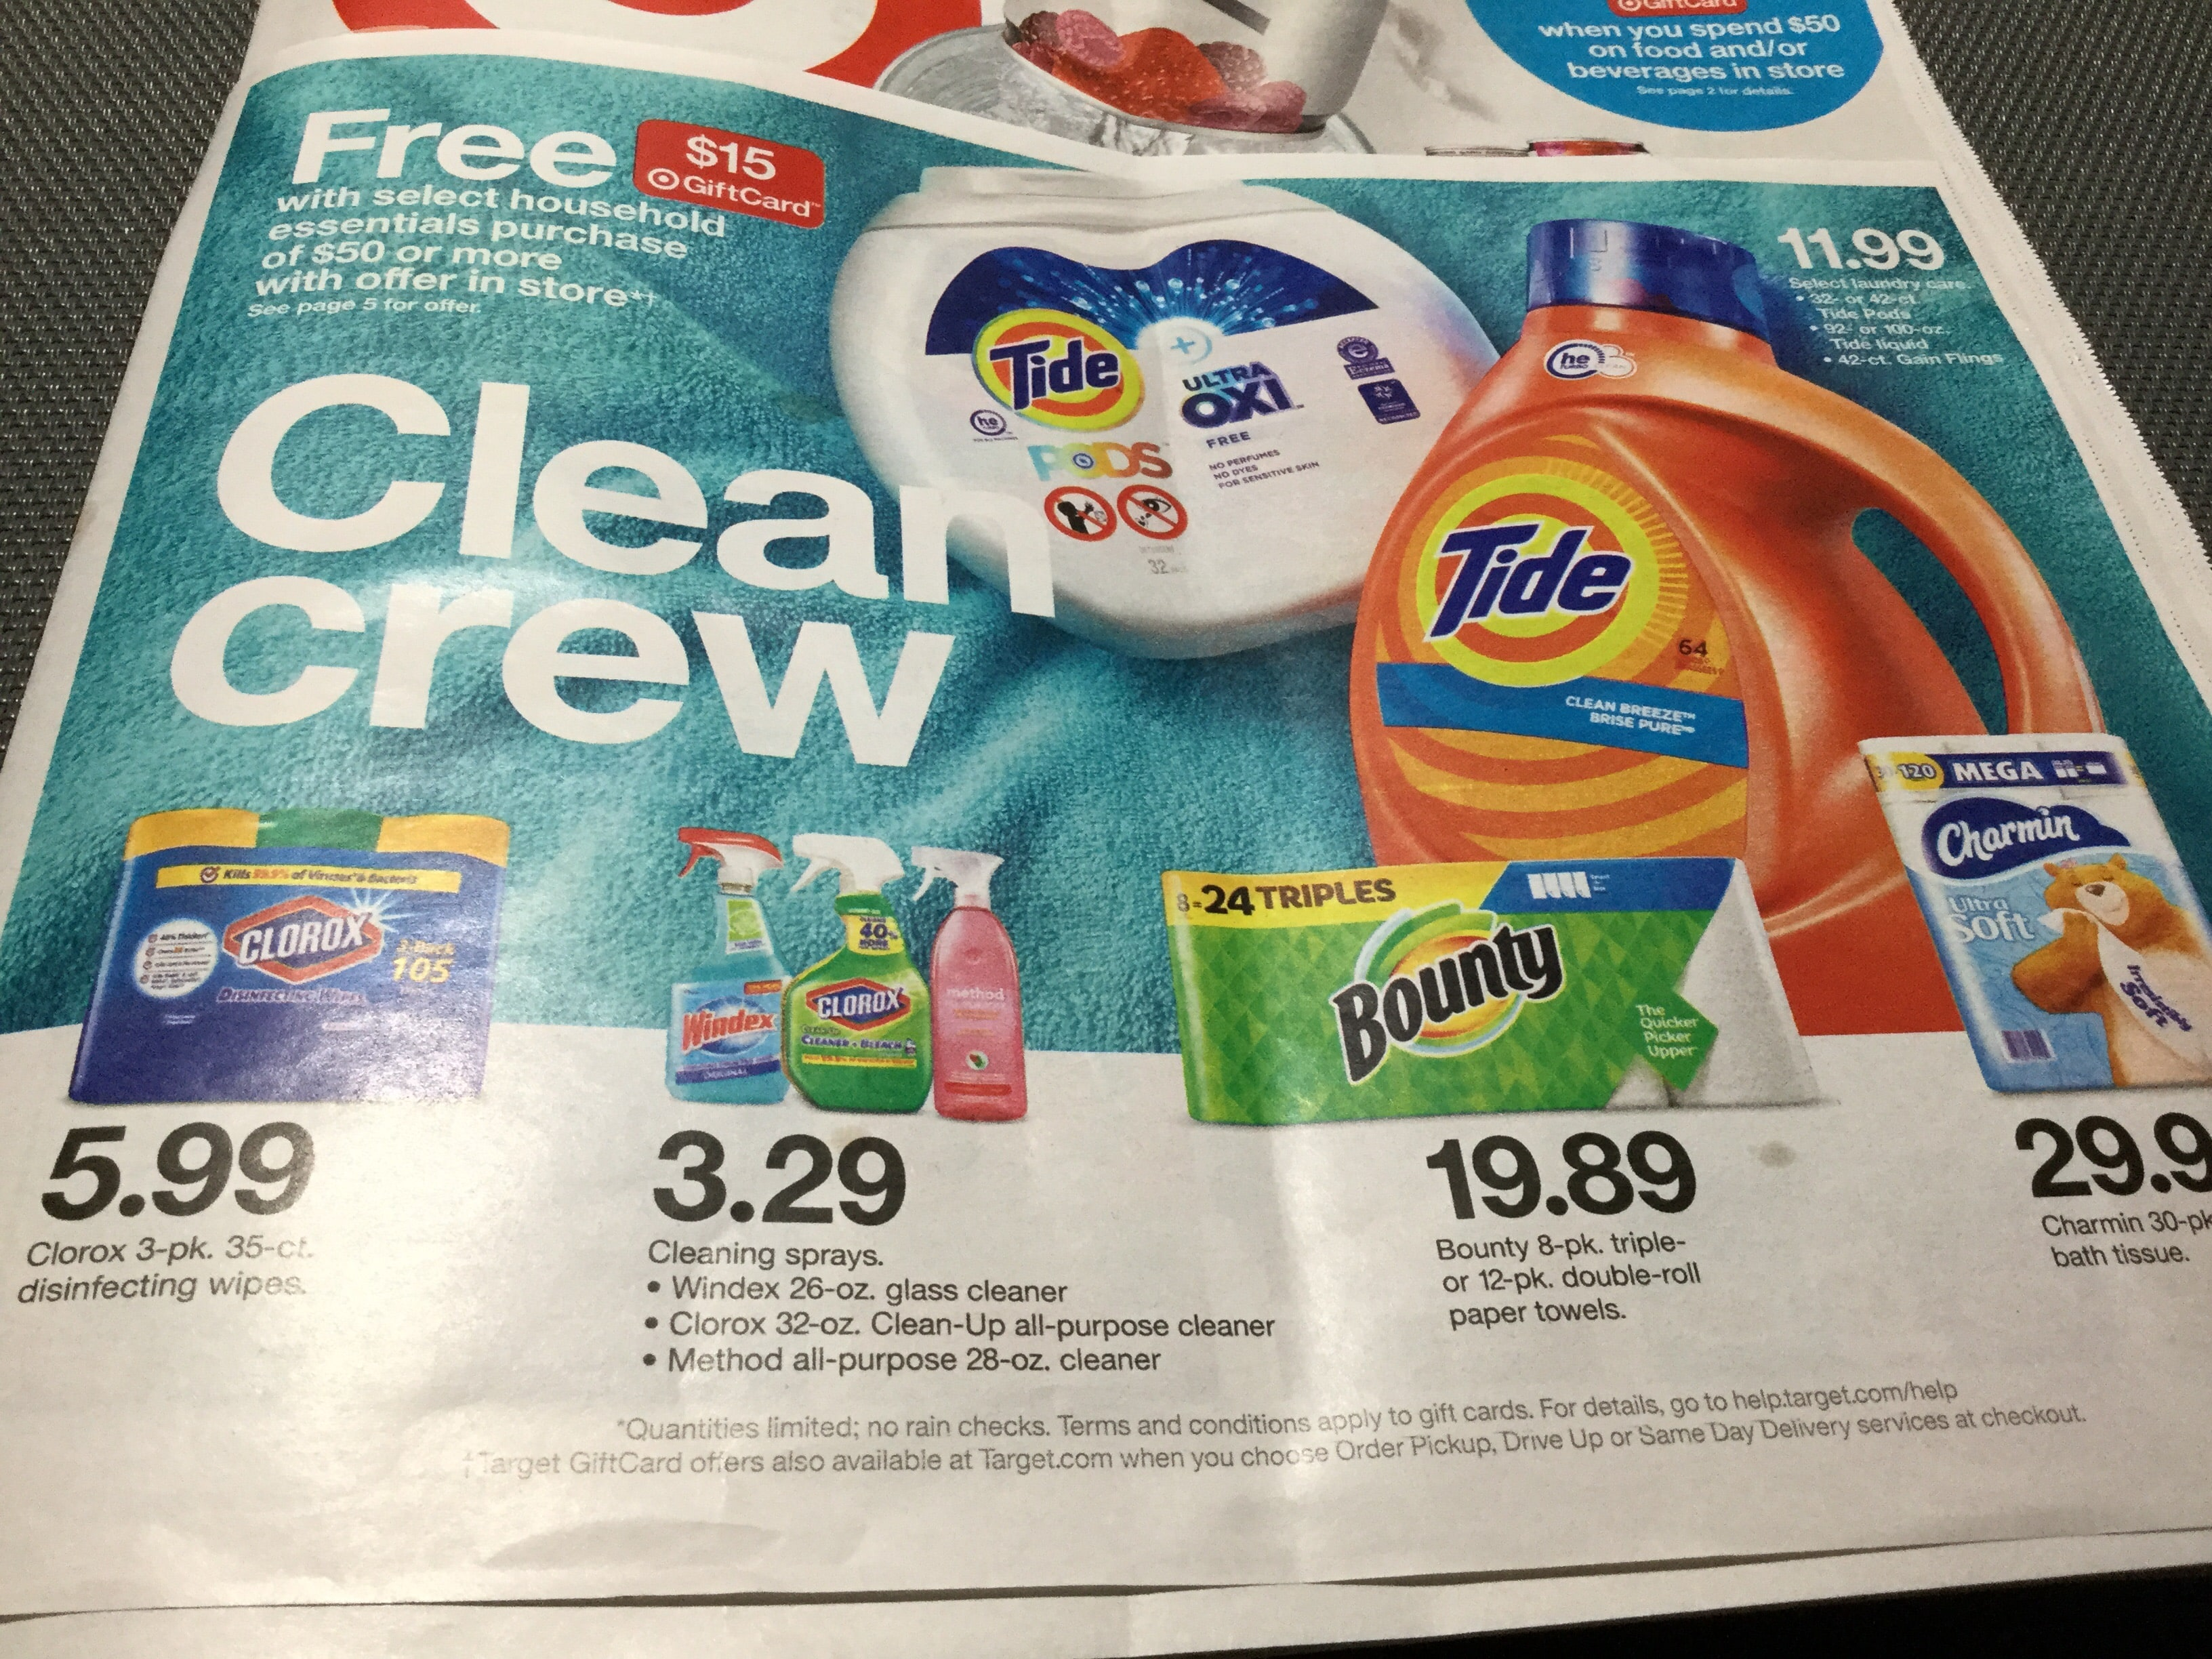 FREE $ 15 Target GiftCard w/ household essentials purchase of $ 50 or more - starting Sun Dec 29 thru Jan 11